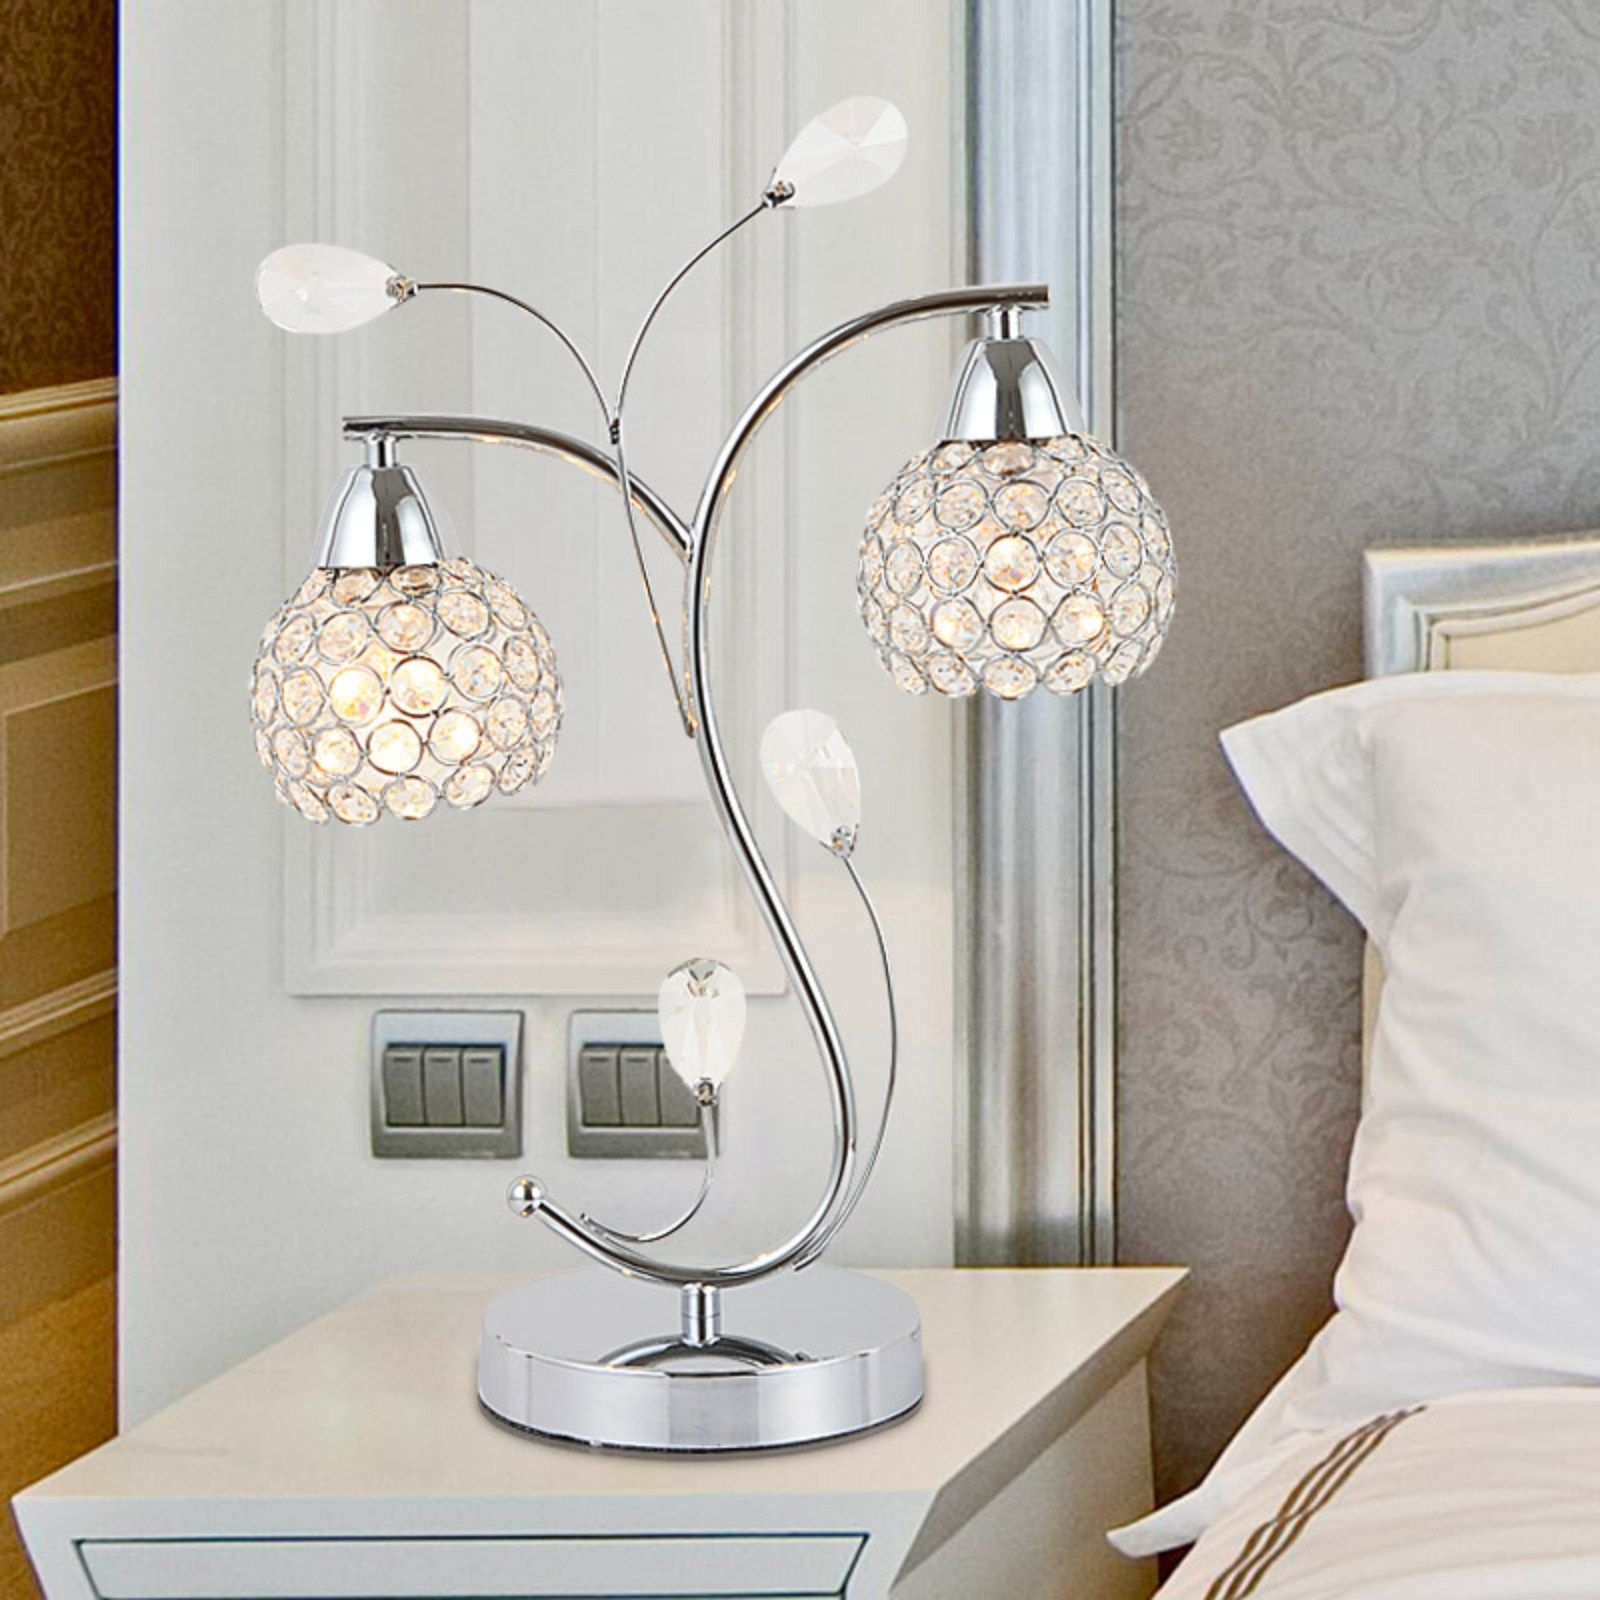 Table Lamps Furniture Charming And Awesome Bedside Table Lamps For Your Crystal White Gla Table Lamps For Bedroom Modern Lamps Bedroom Bedroom Lamps Design